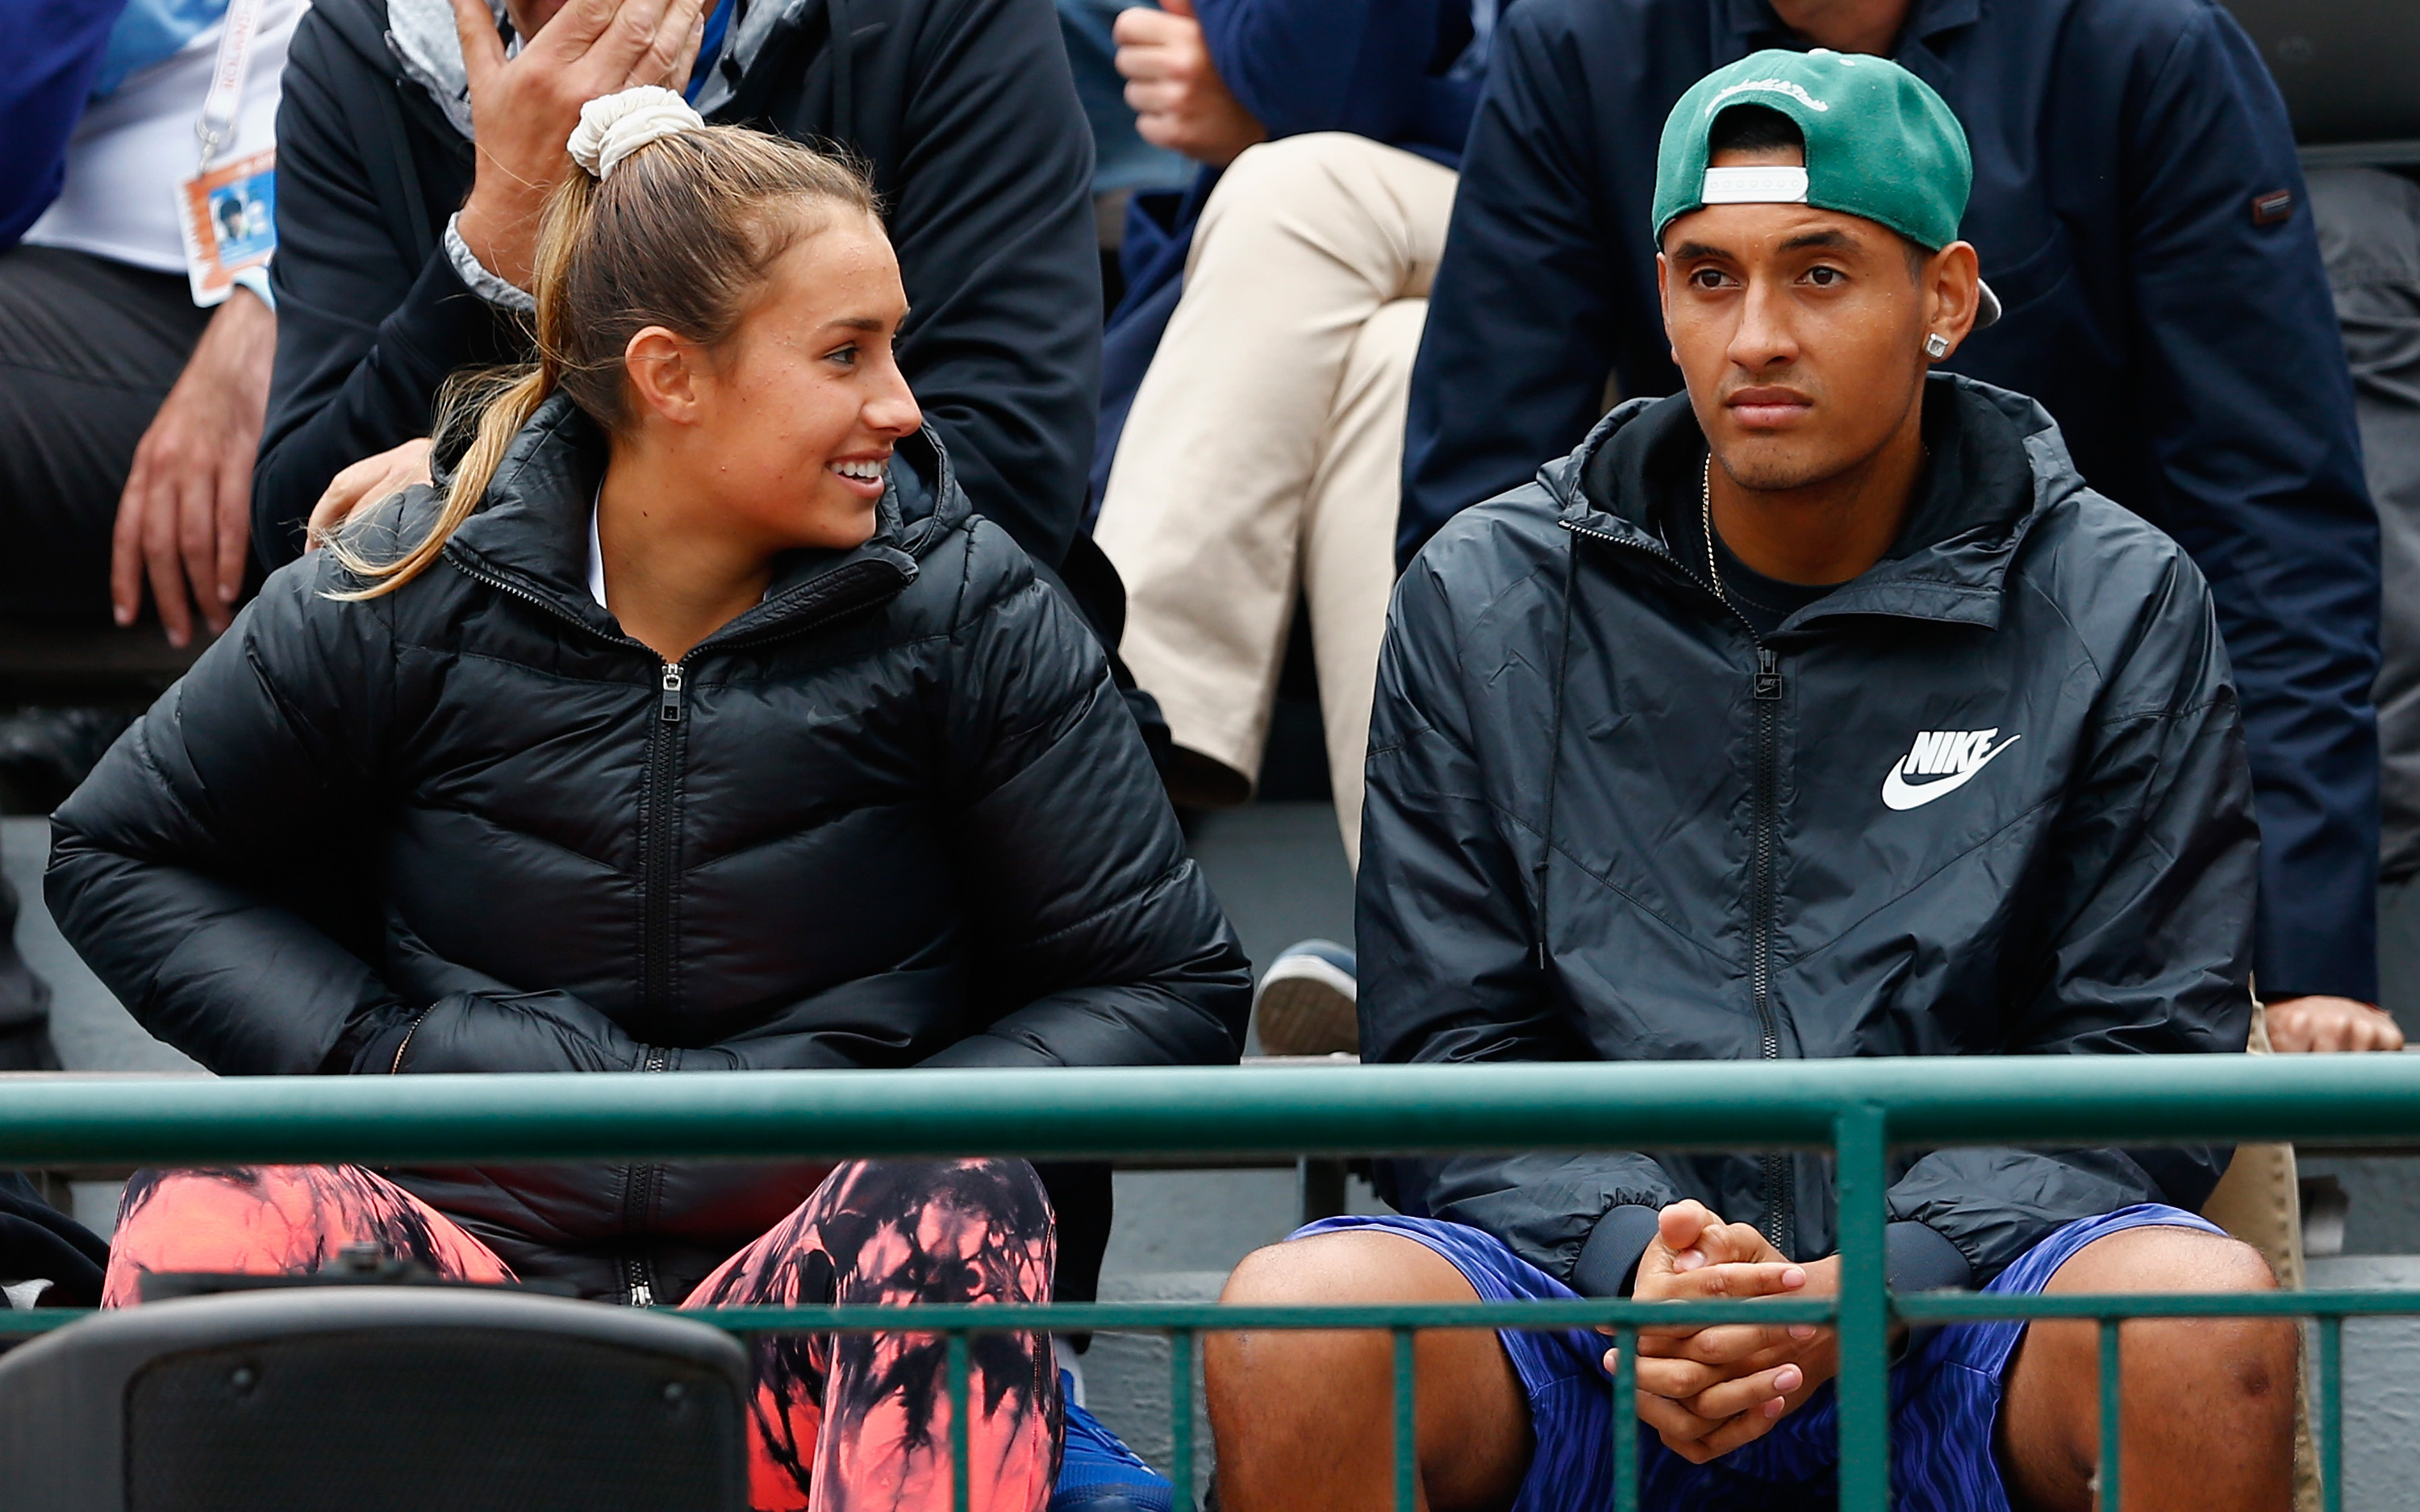 After getting a walkover, Kyrgios watched the Tomic-Kokkinakis match.